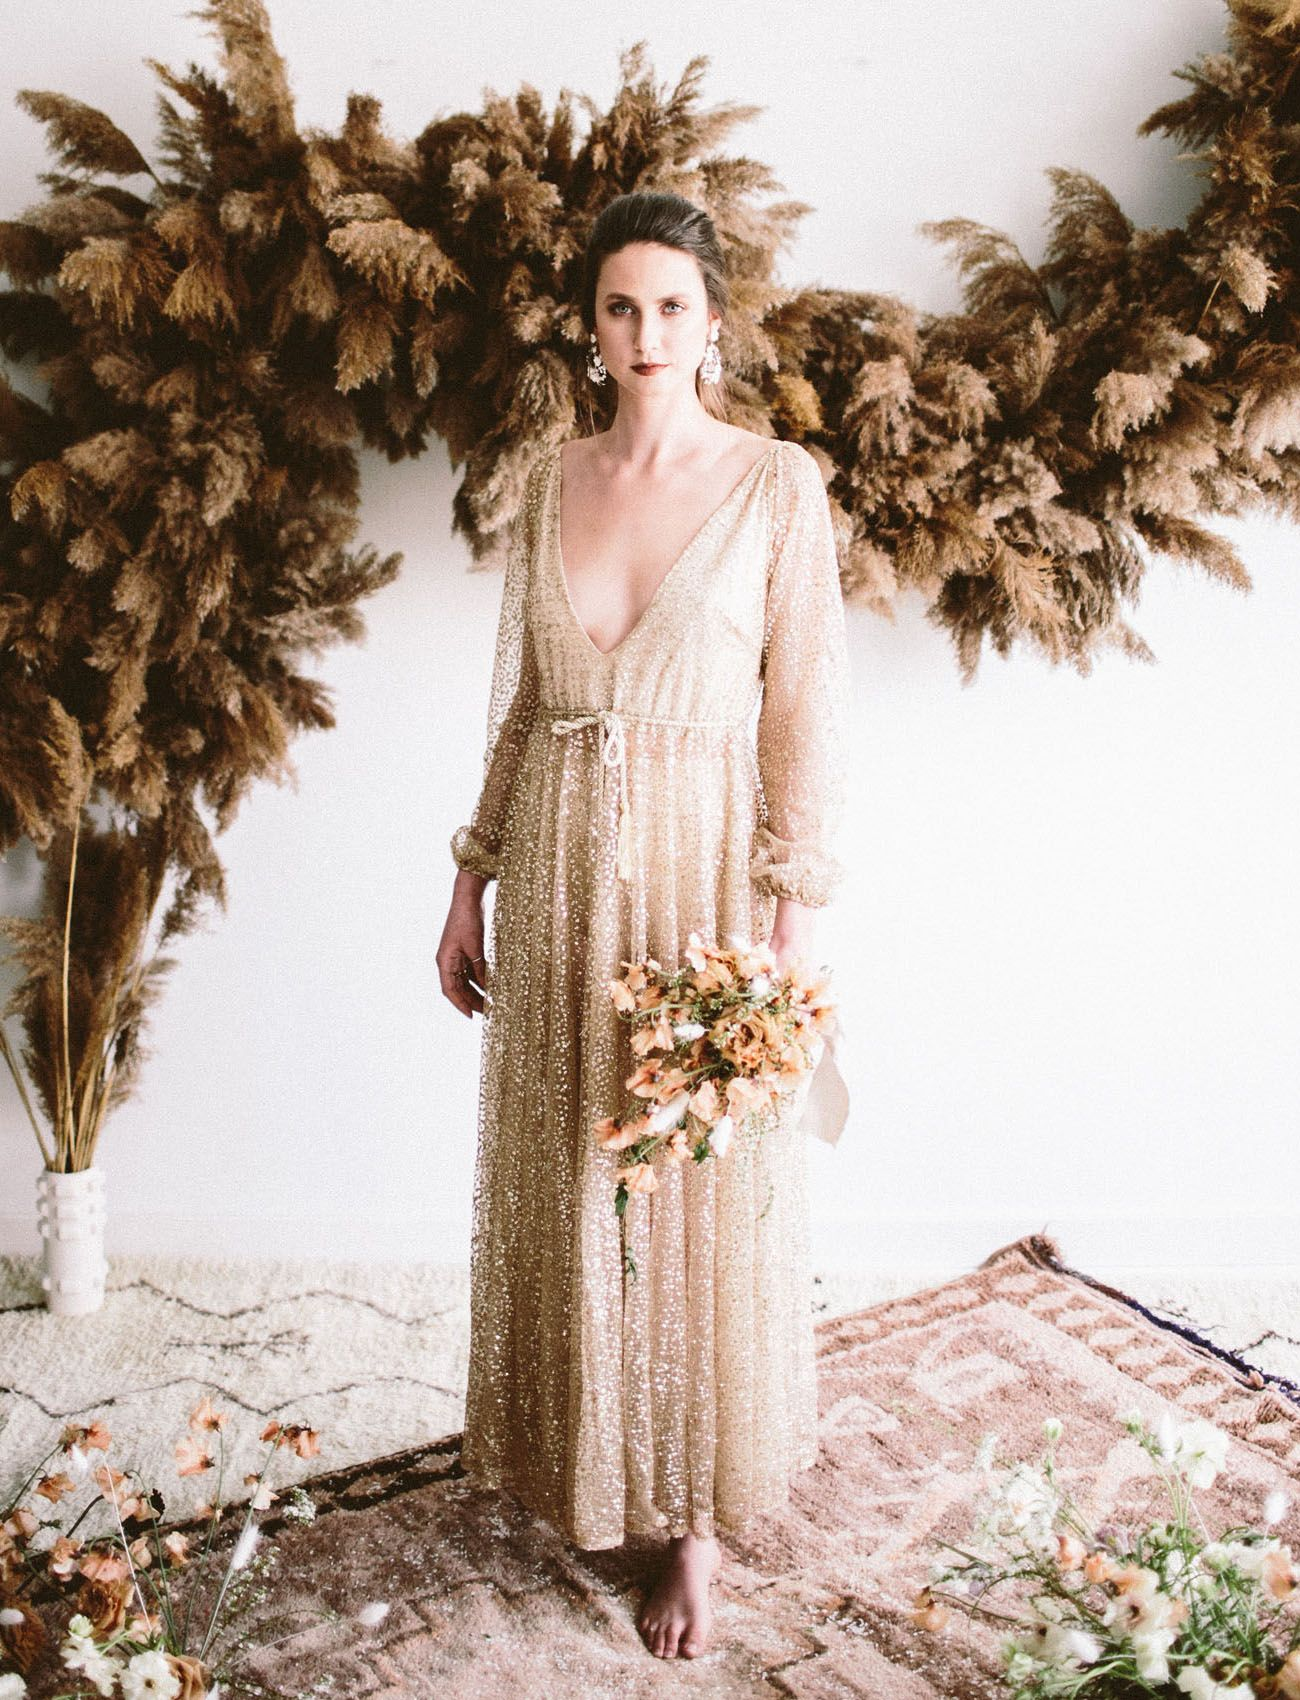 1a4abe951d5c As Winter Shifts to Spring: Modern + Moody Wedding Inspiration ...